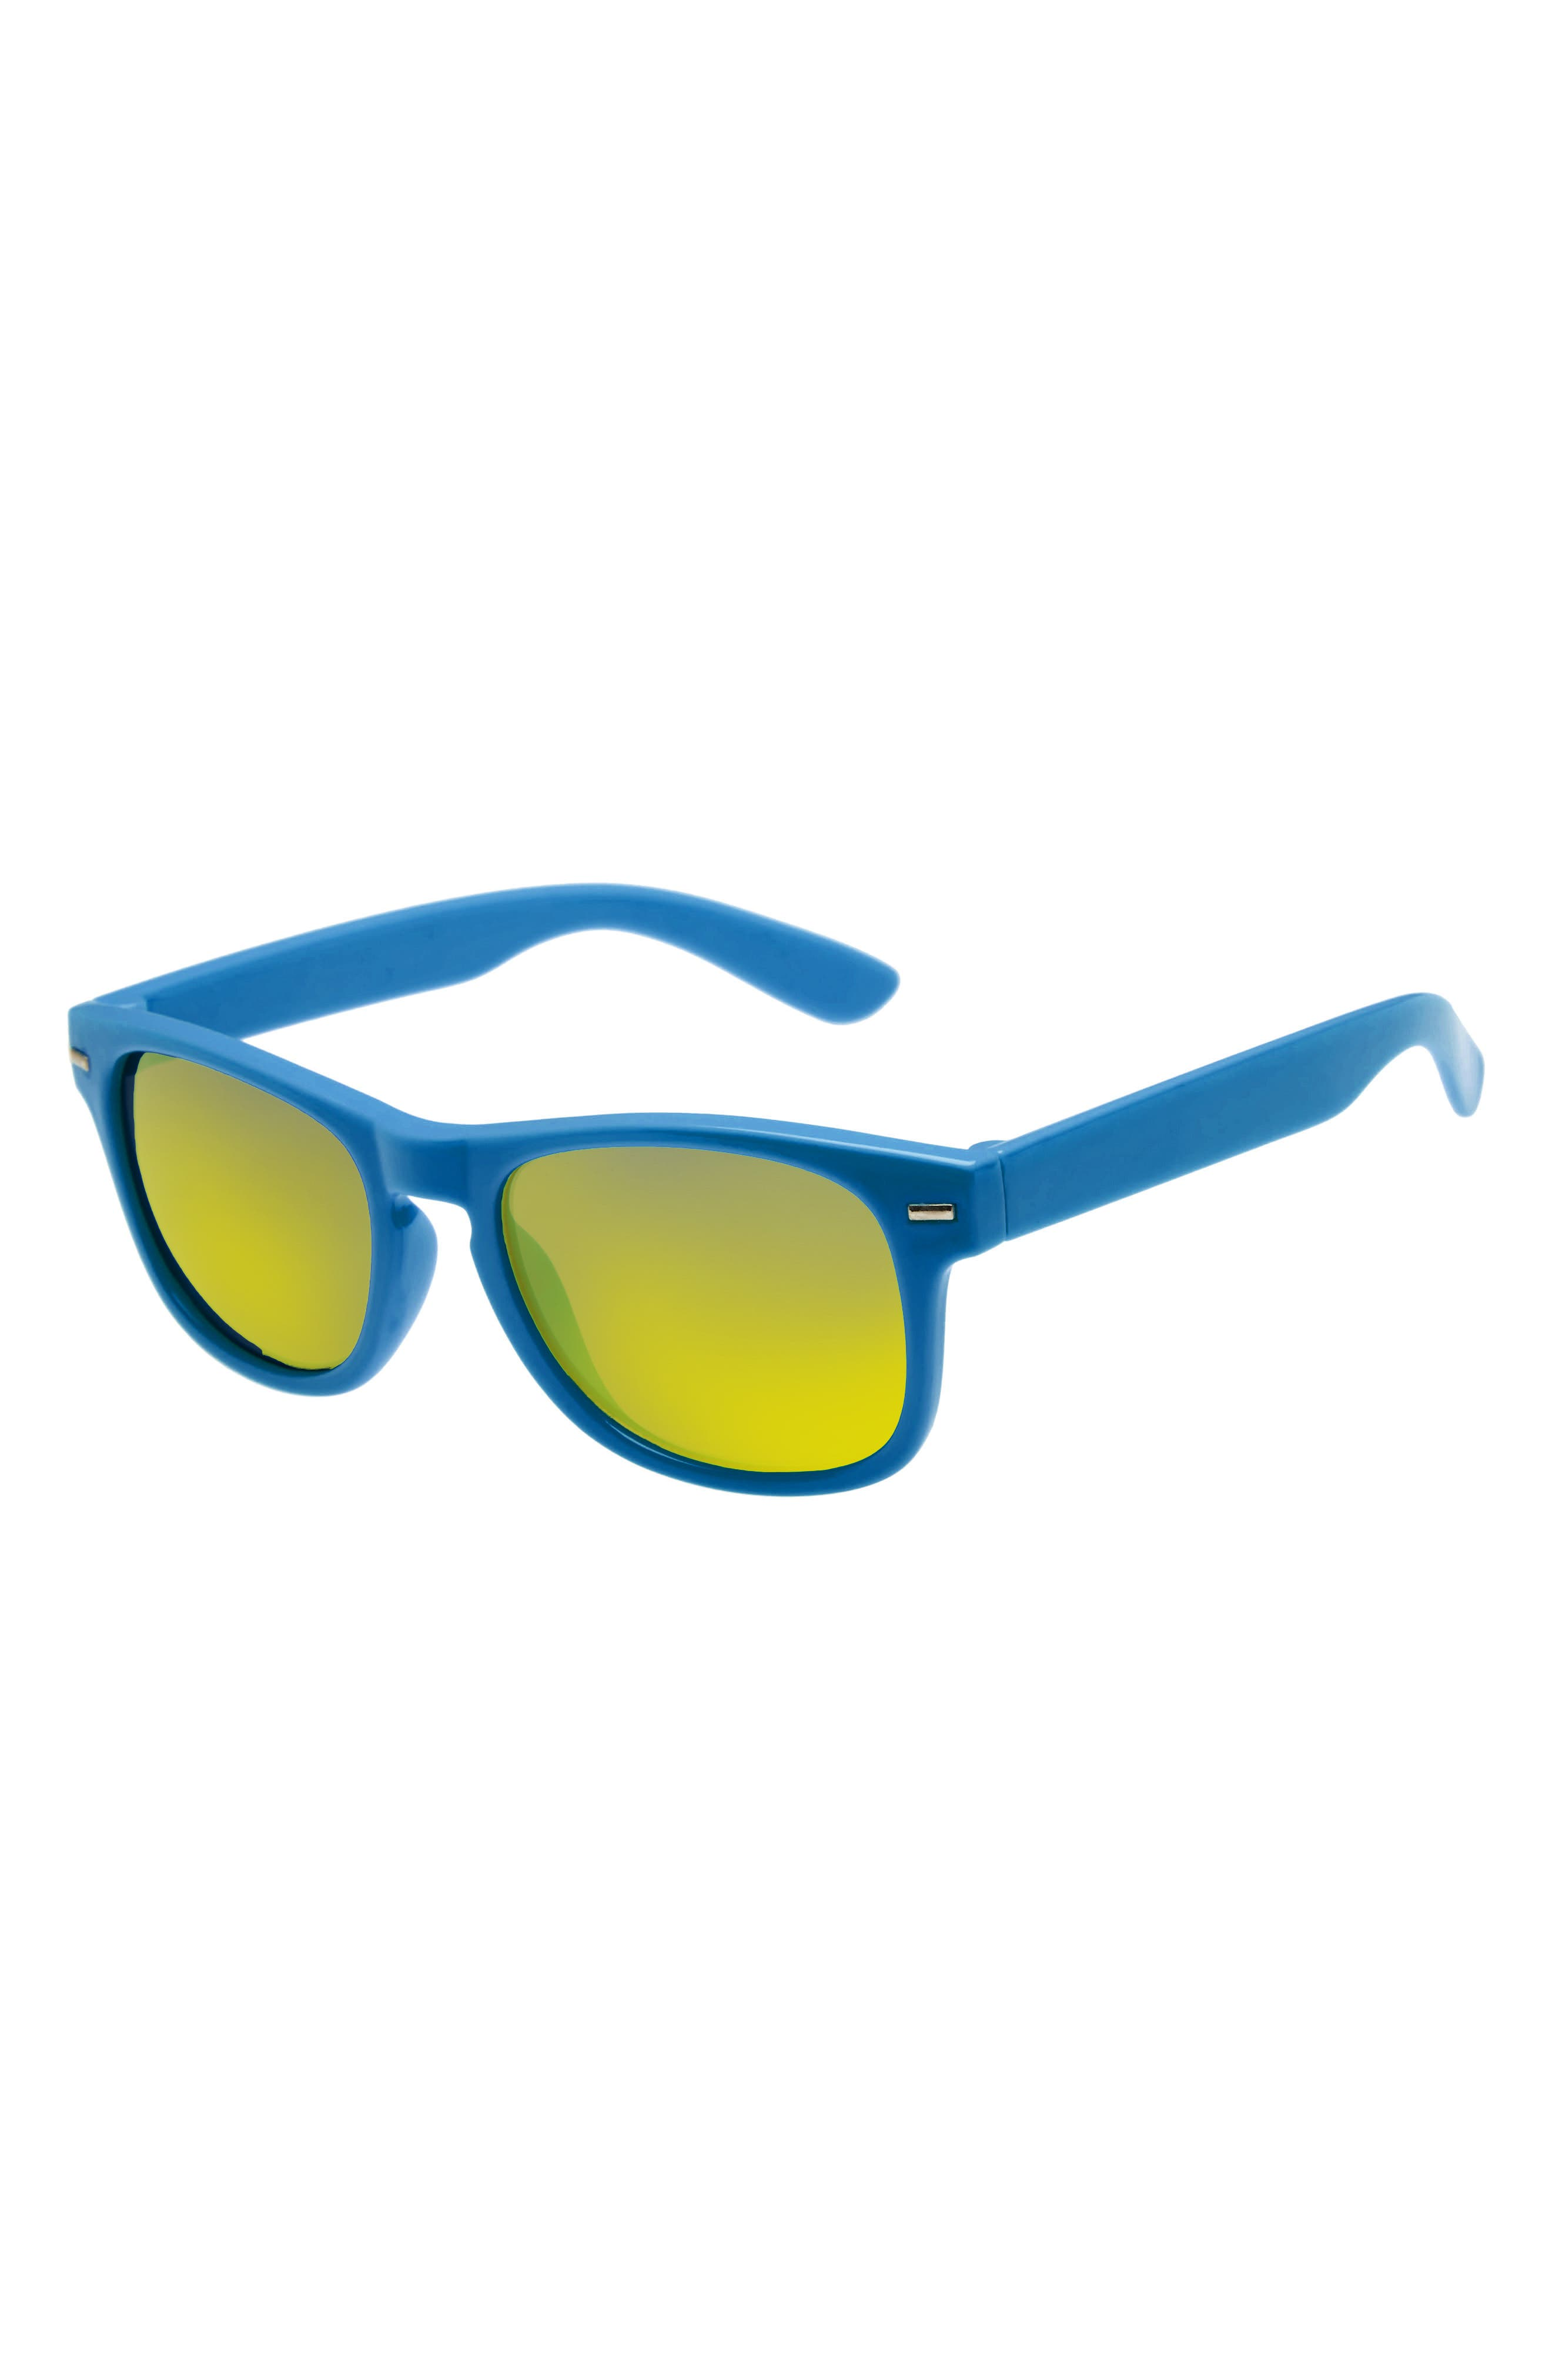 Mirrored Sunglasses,                         Main,                         color, 401